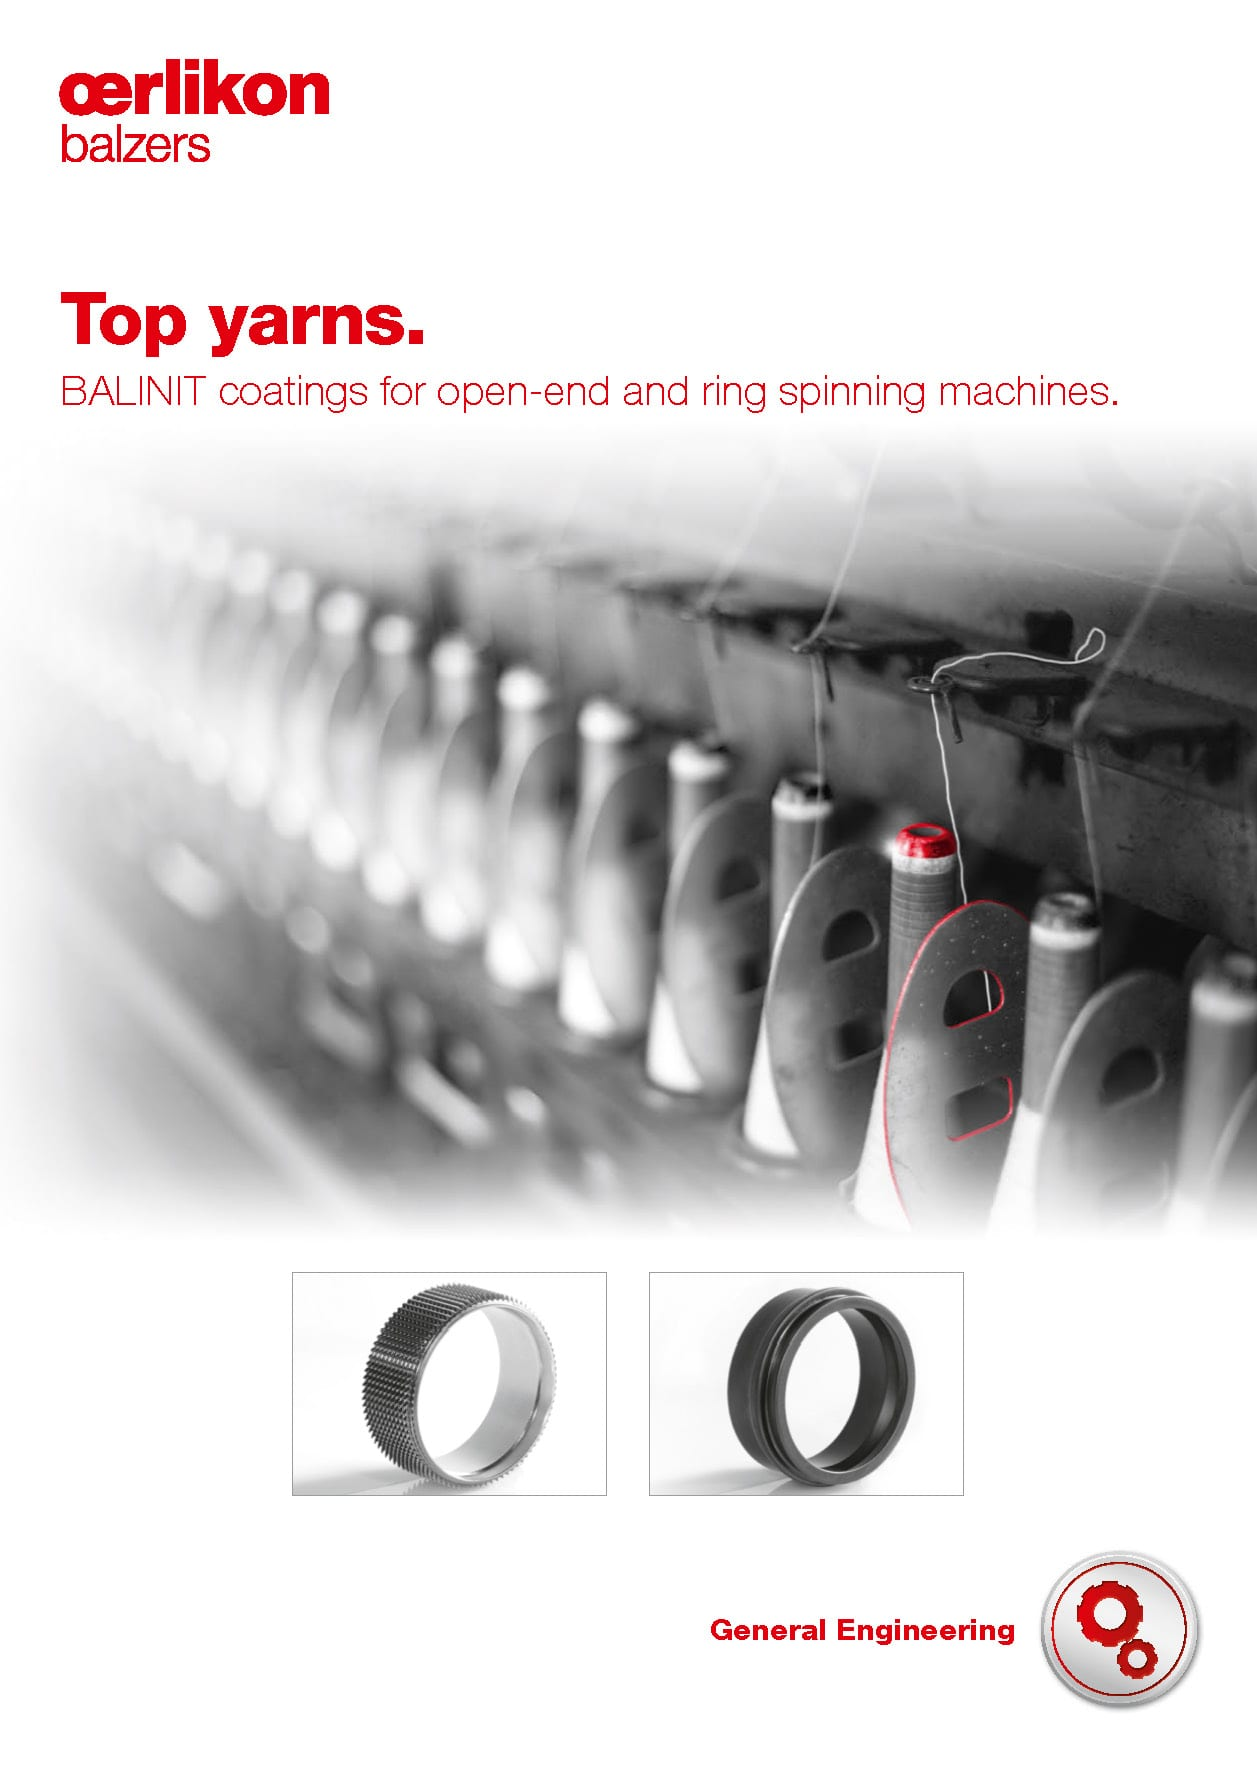 Spinning machines - Top yarns